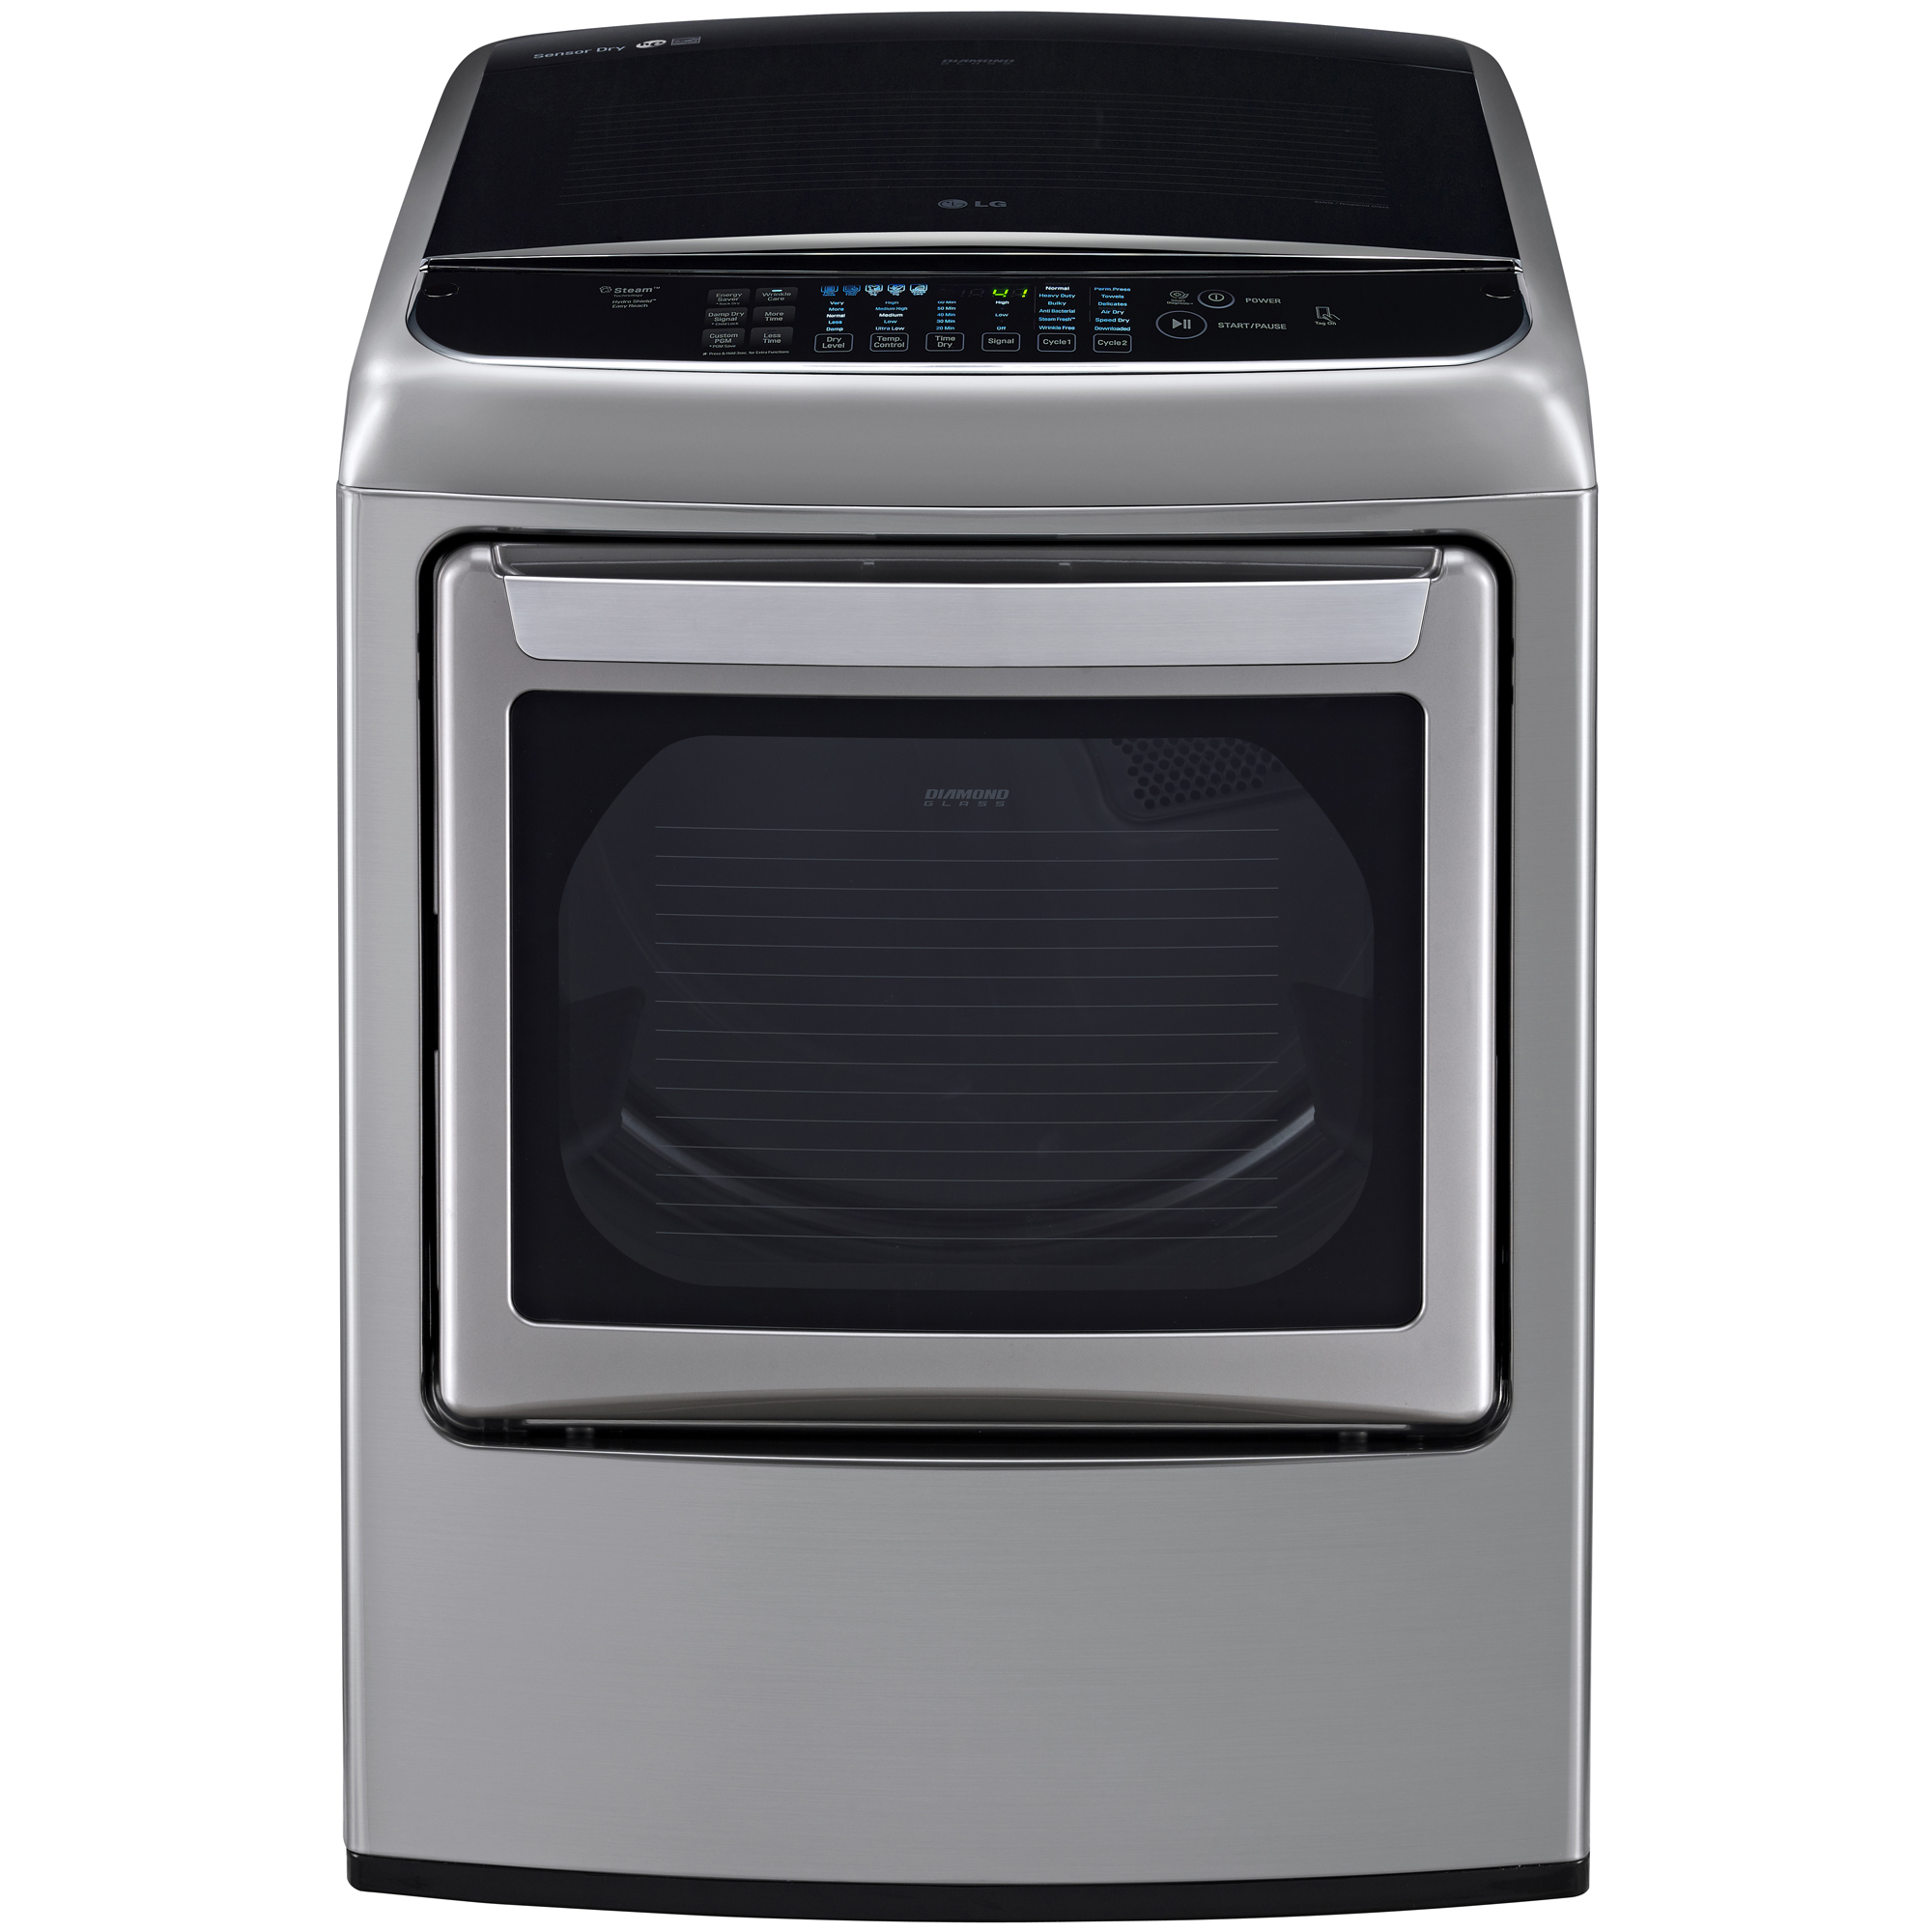 LG DLGY1702VE 7.3 cu. ft. Steam Gas Dryer w/ Front Controls and EasyLoad™ Door – Graphite Steel